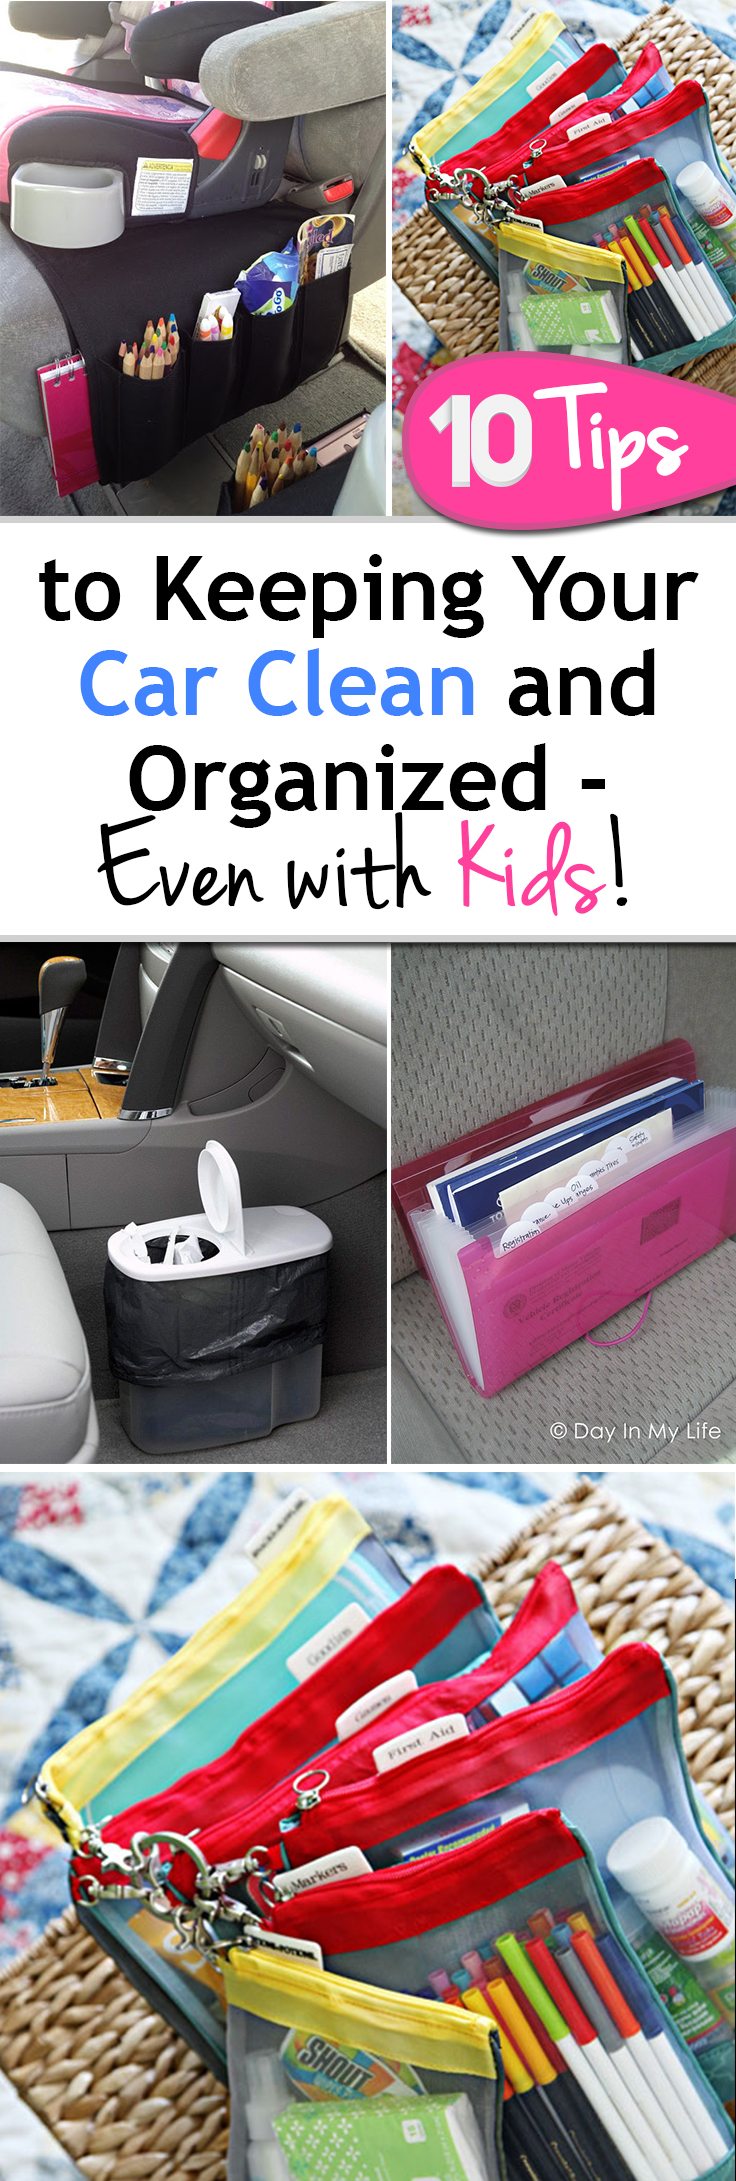 10 tips to keeping your car clean and organized even with kids wrapped in rust How to keep your car exterior clean